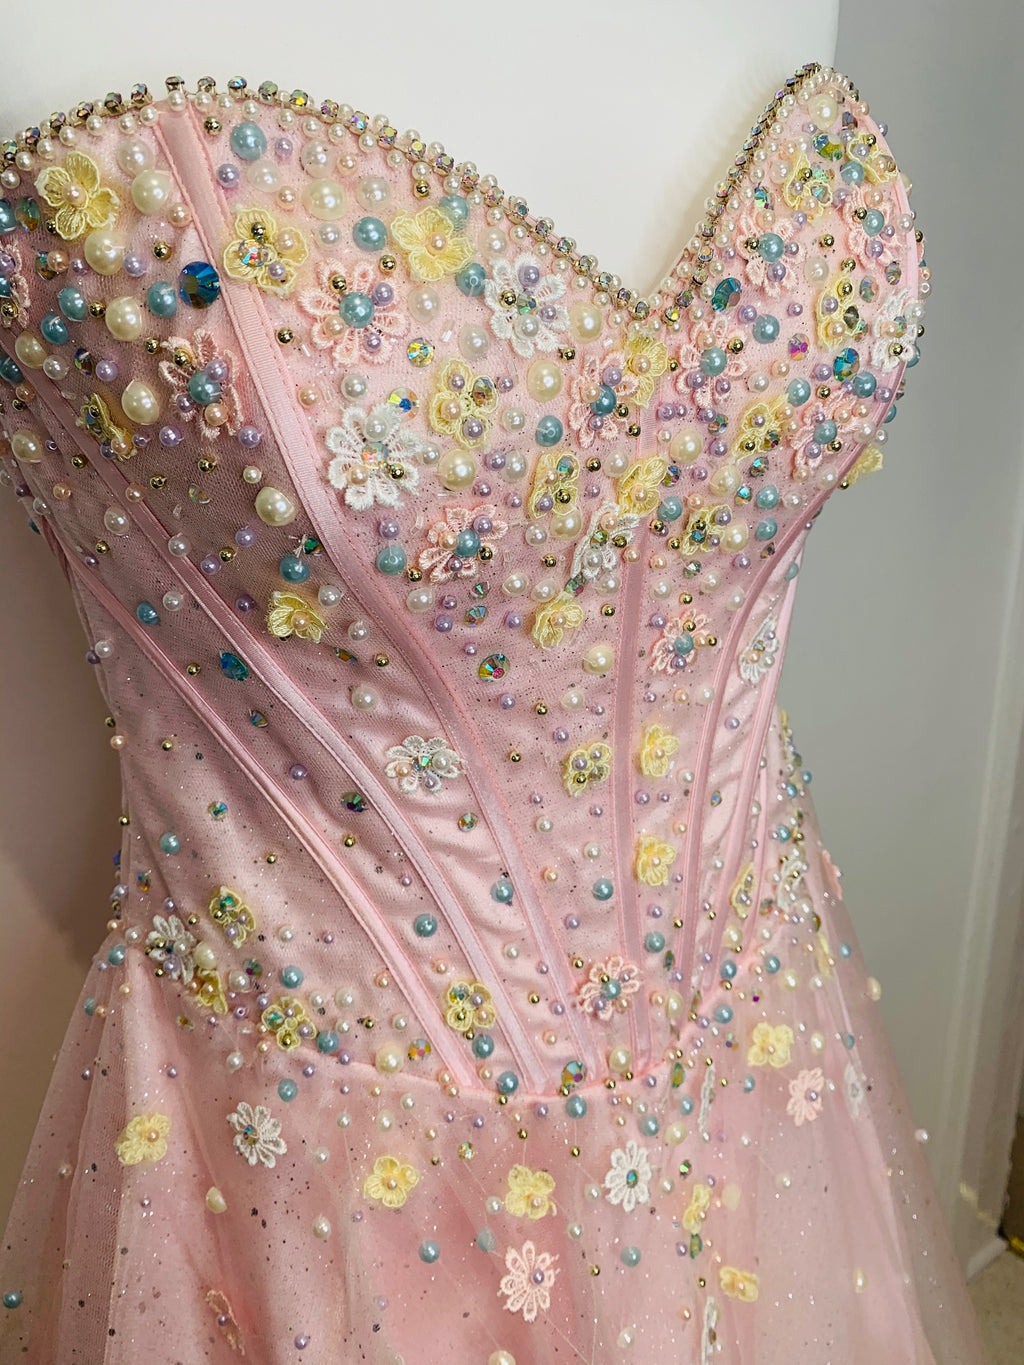 Pink Corset Short Pageant Dresses - Limited Edition - Gissings Boutique